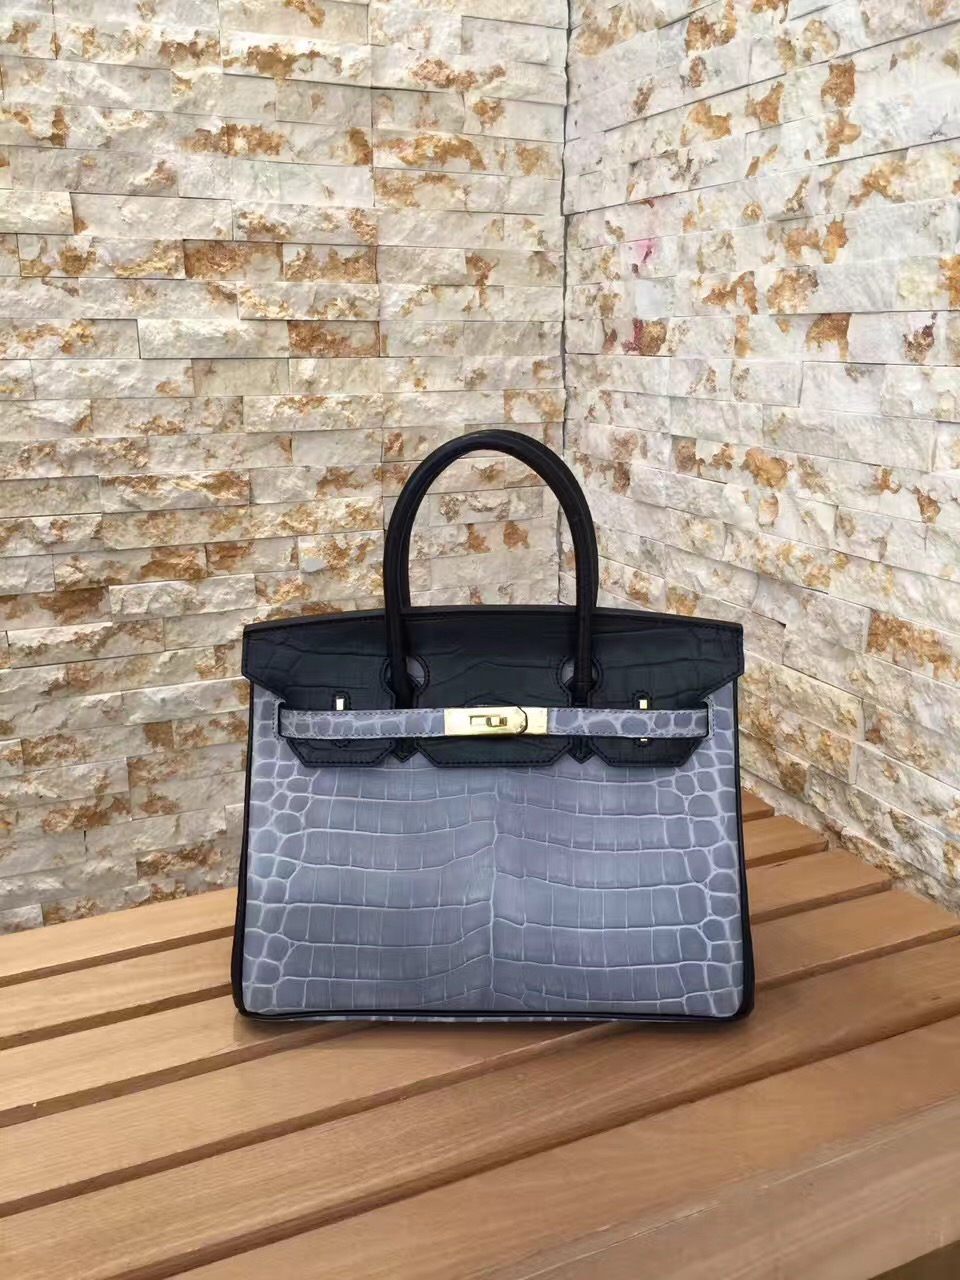 Women Platinum Embossed Alligato Handbag Genuine Leather Crocodile Tote Capacity Messenger Crossbody Female High Quality Purse fashionable women casual high quality crocodile embossed genuine leather small mini messenger bag